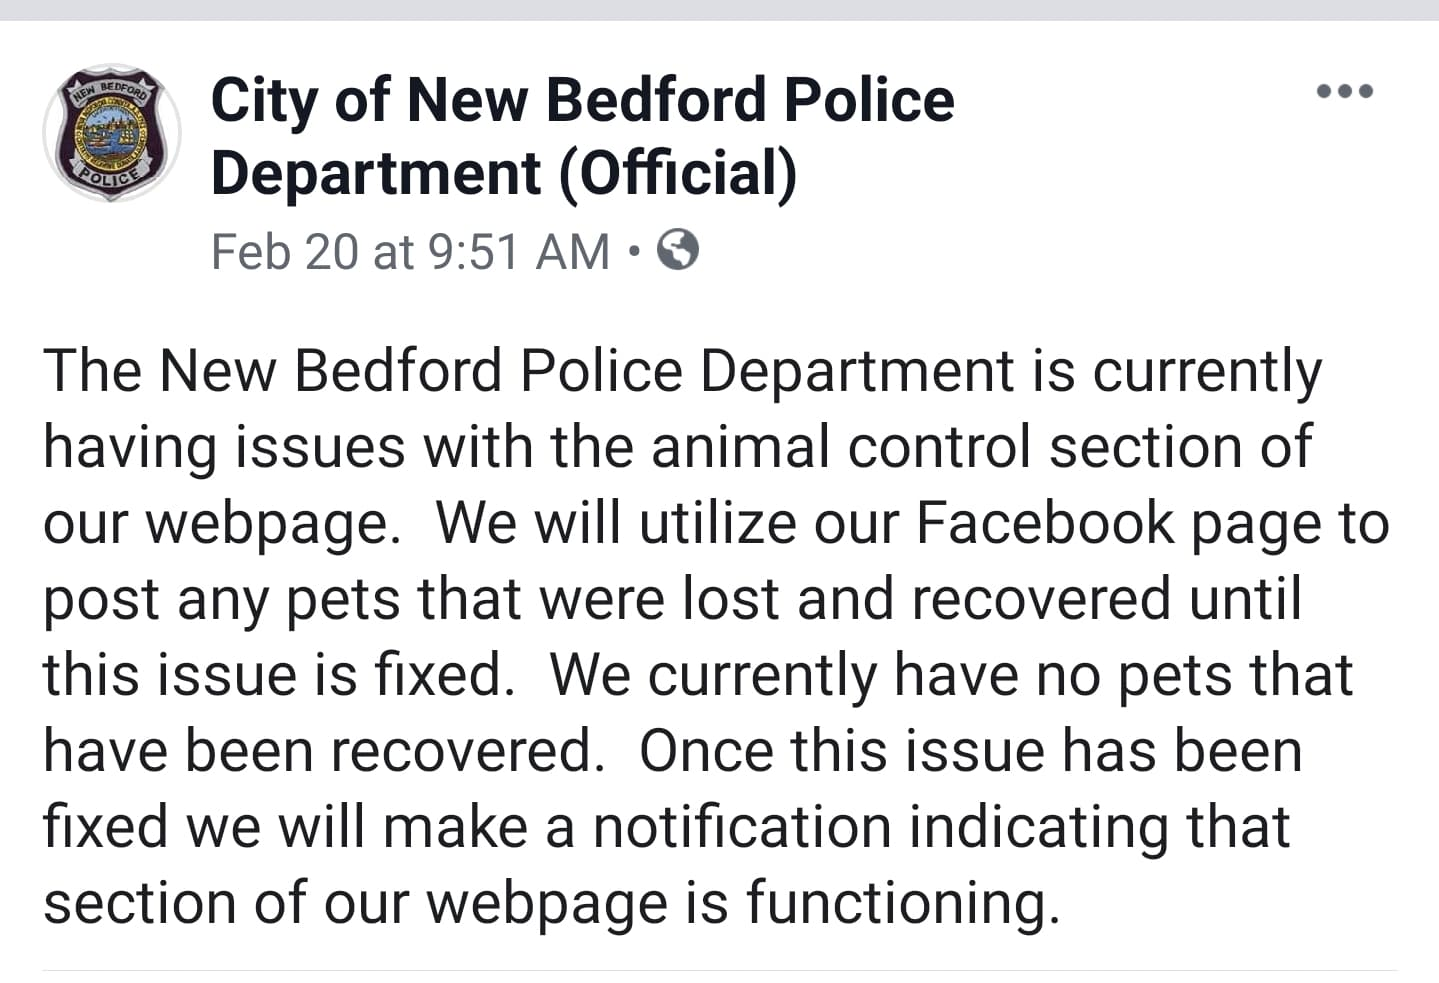 February of 2019 after this investigation was first time the city ever acknowledge posting any animals ever.